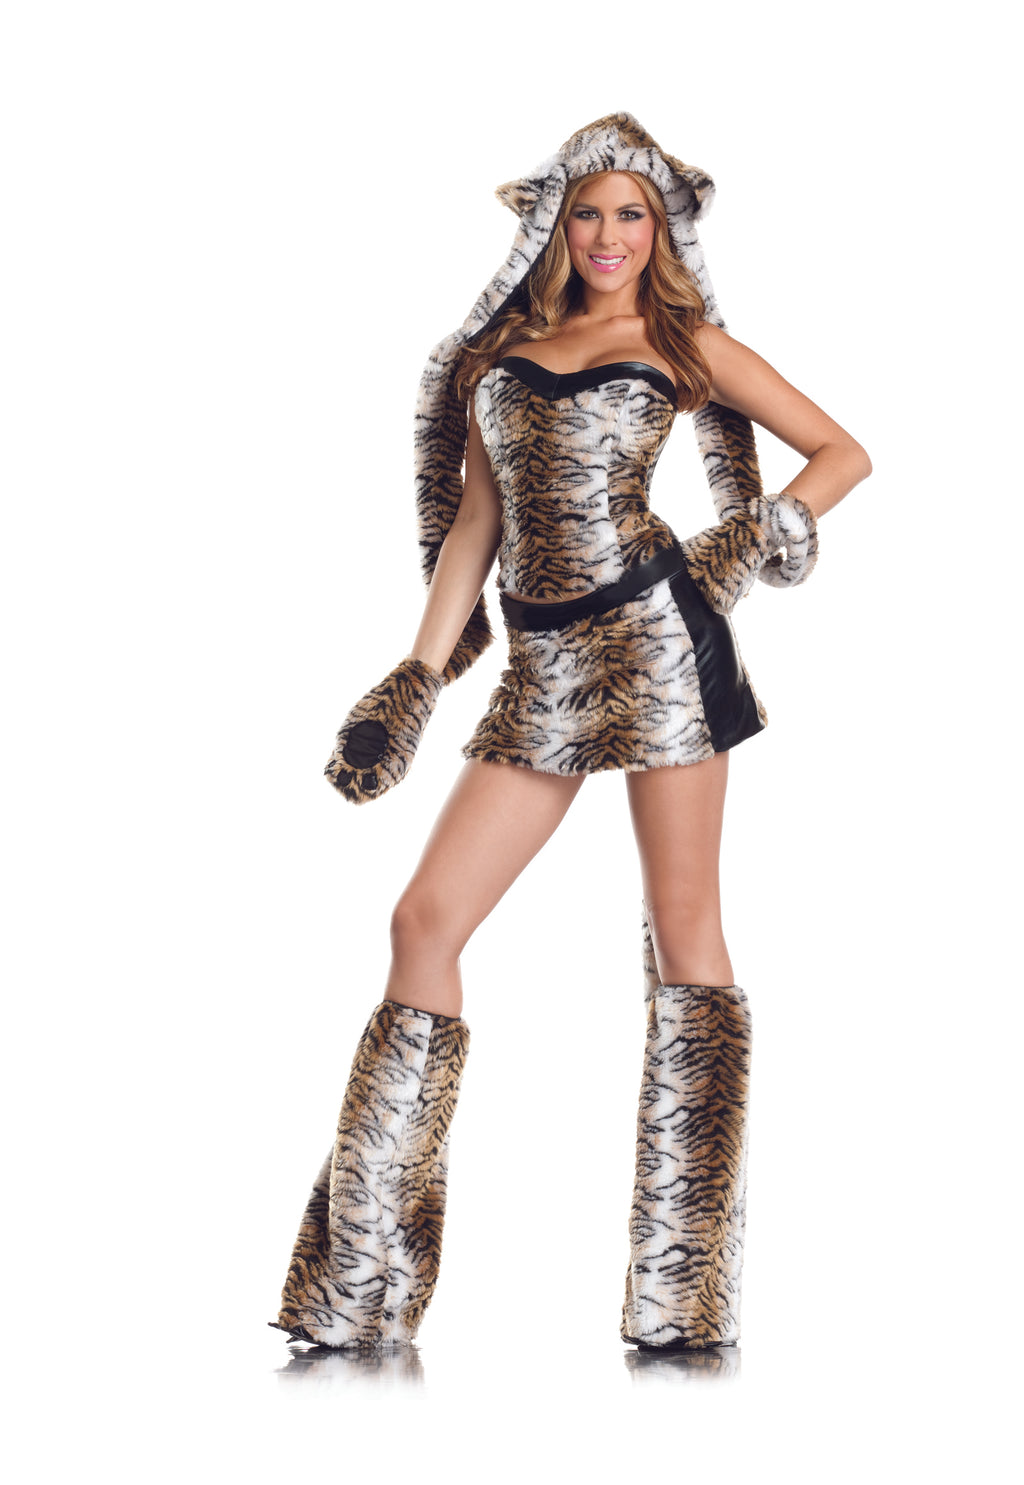 Adult-Women's-6-Piece-Sexy-Tiger-Halloween-Party-Costume-With-Hood-&-Leg-Warmers